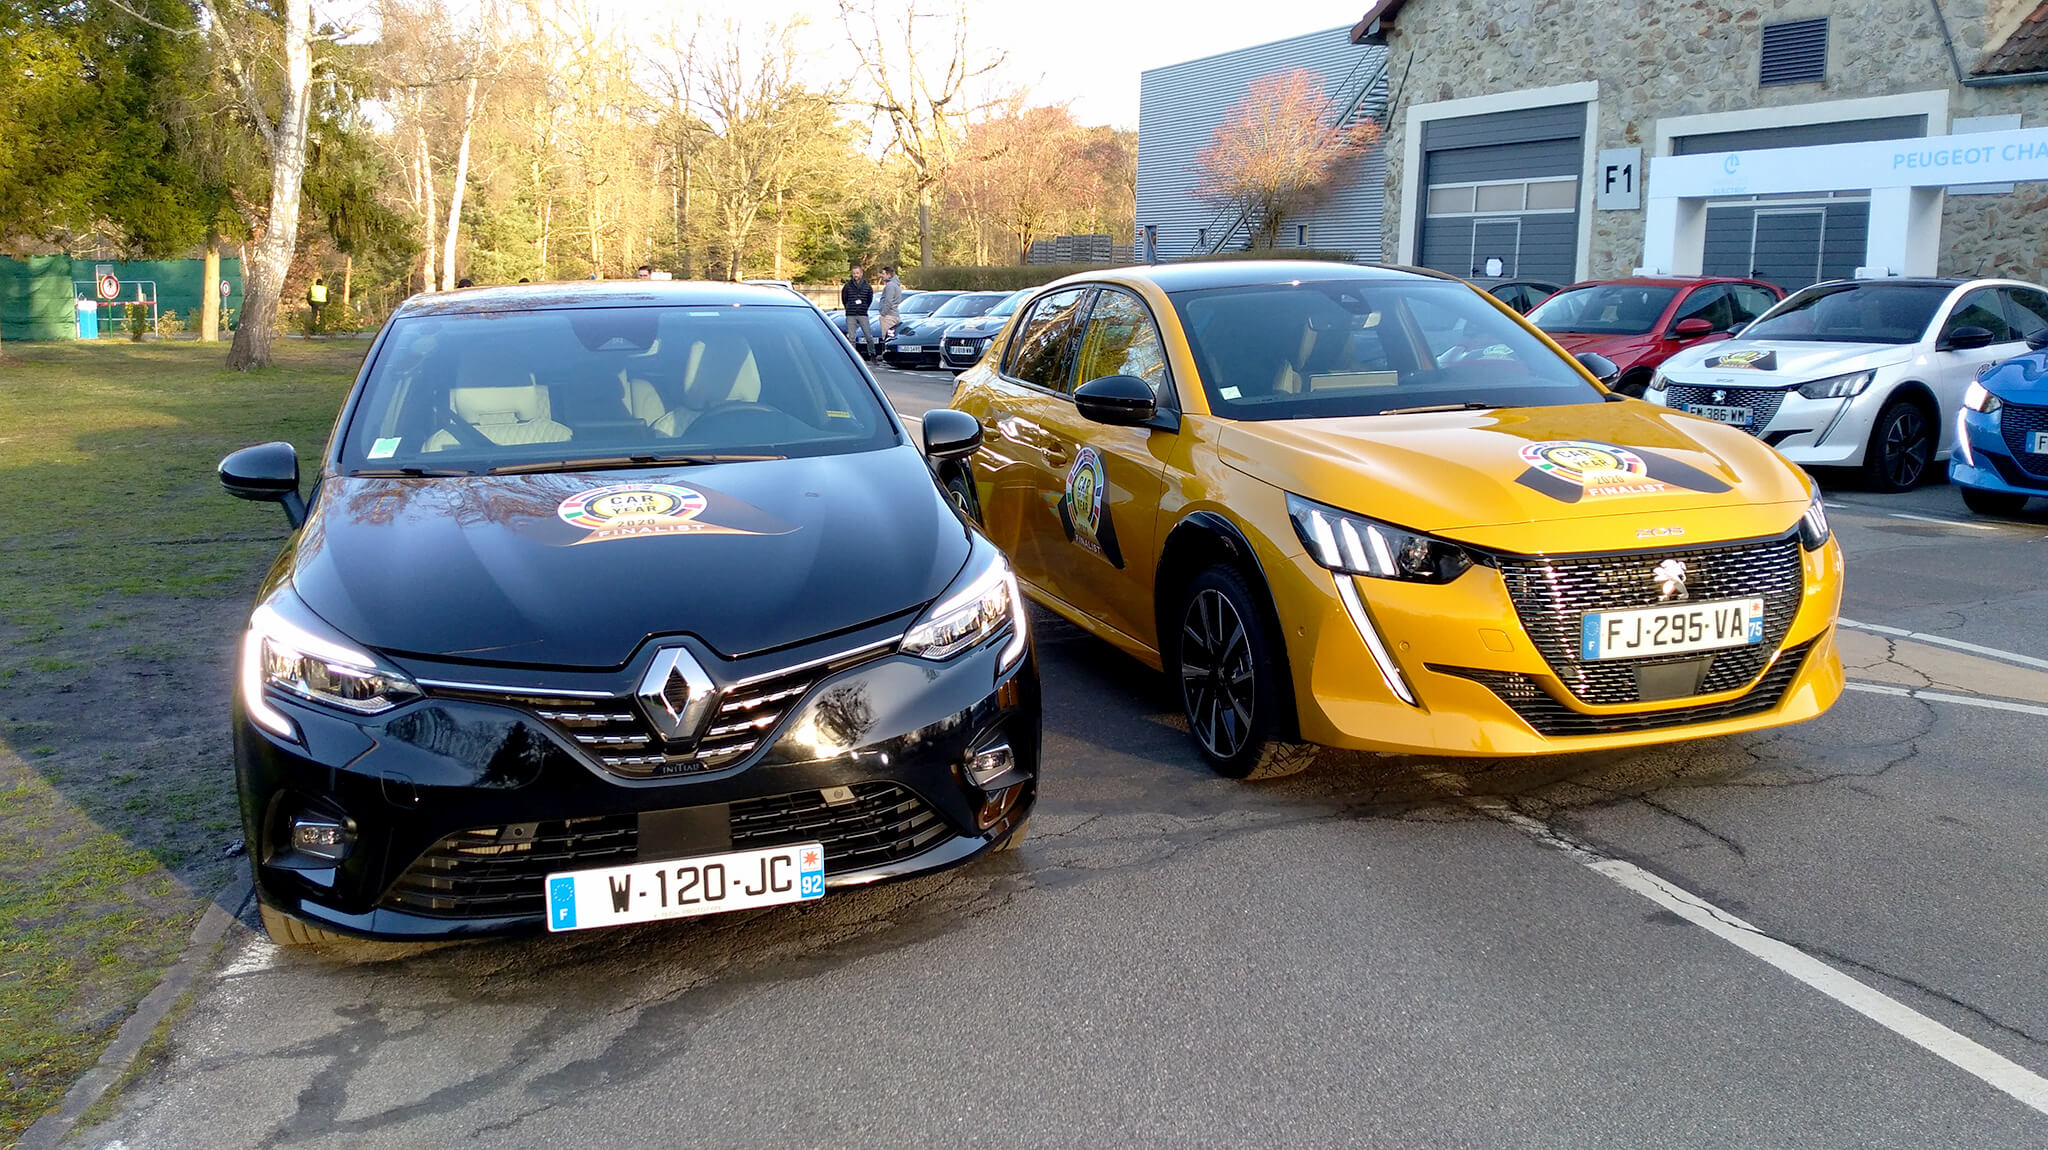 Car of the Year 2020 — Renault Clio vs Peugeot 208